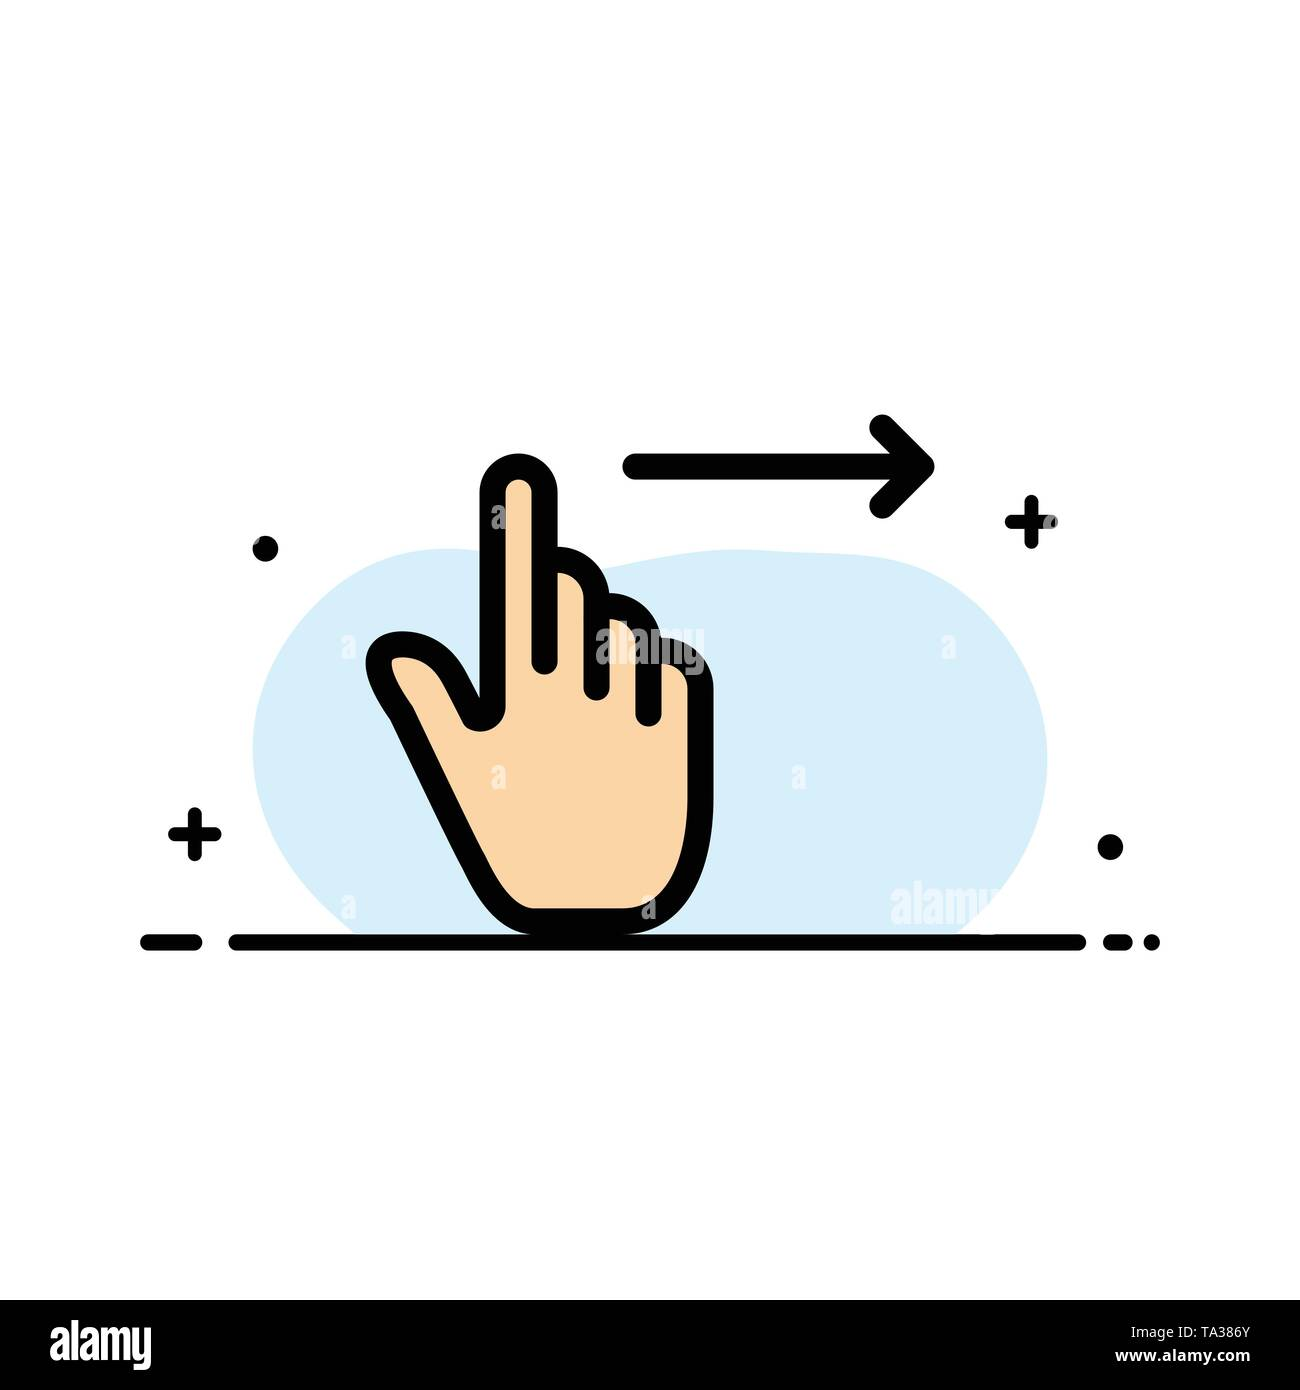 Finger, Gestures, Right, Slide, Swipe  Business Flat Line Filled Icon Vector Banner Template - Stock Image